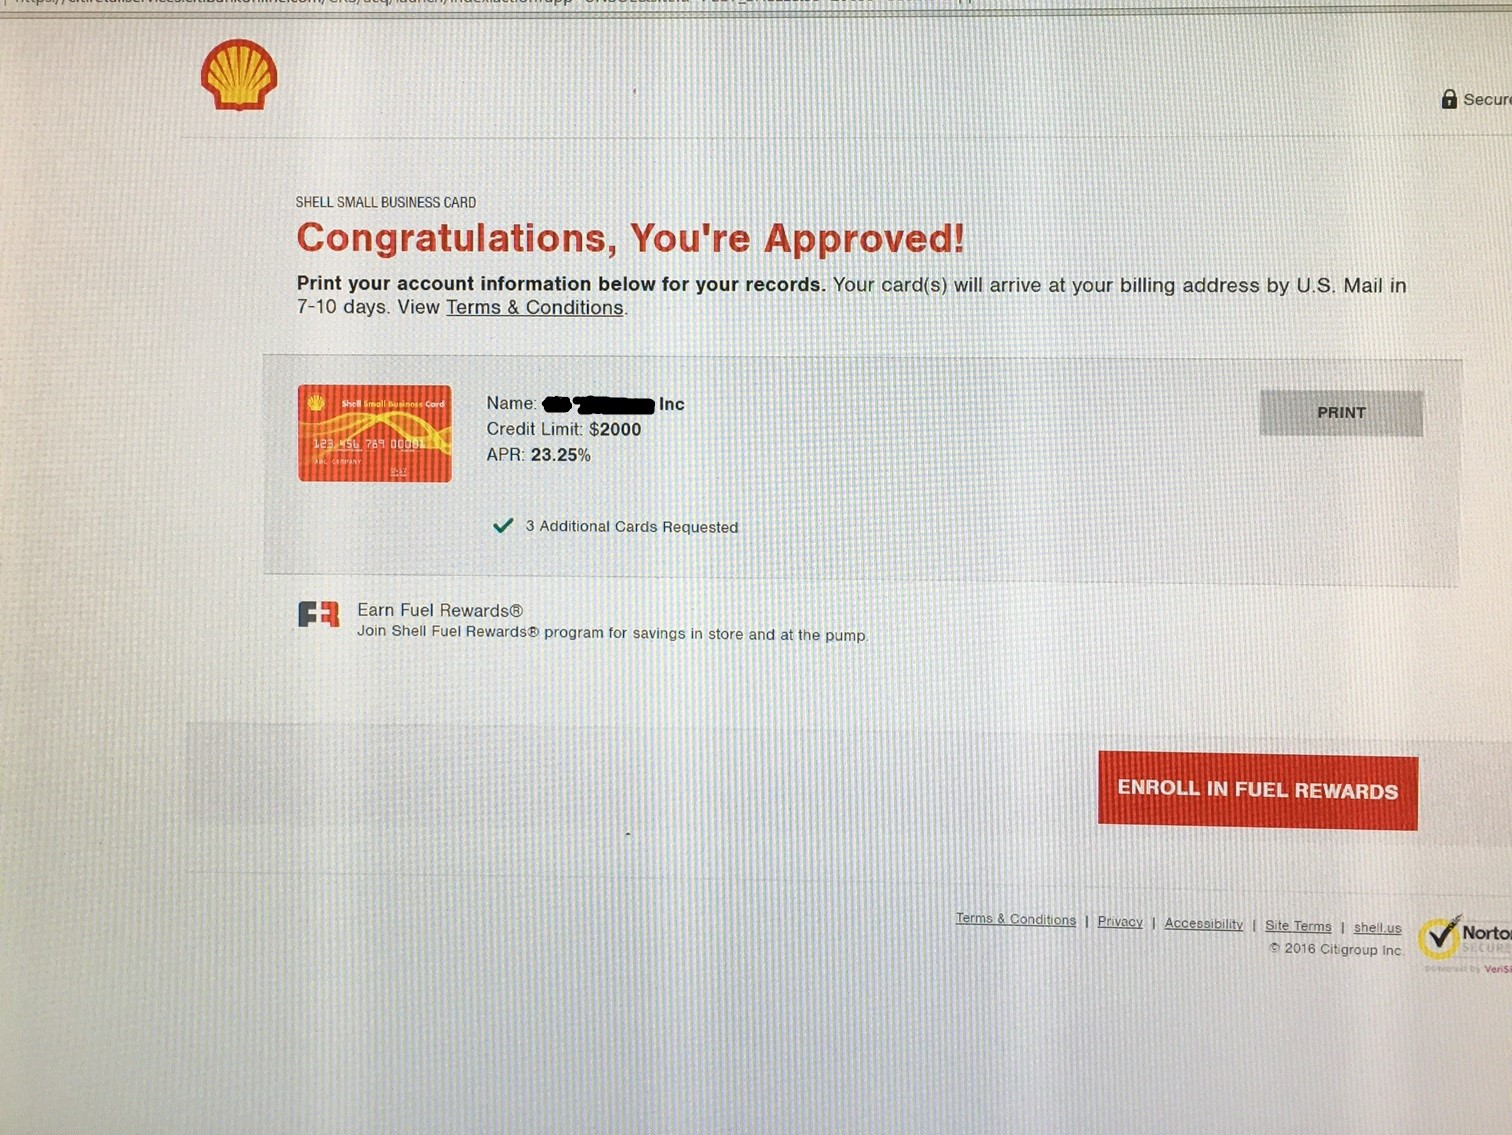 shell small business card approved myfico forums 4767788 - Shell Business Gas Card